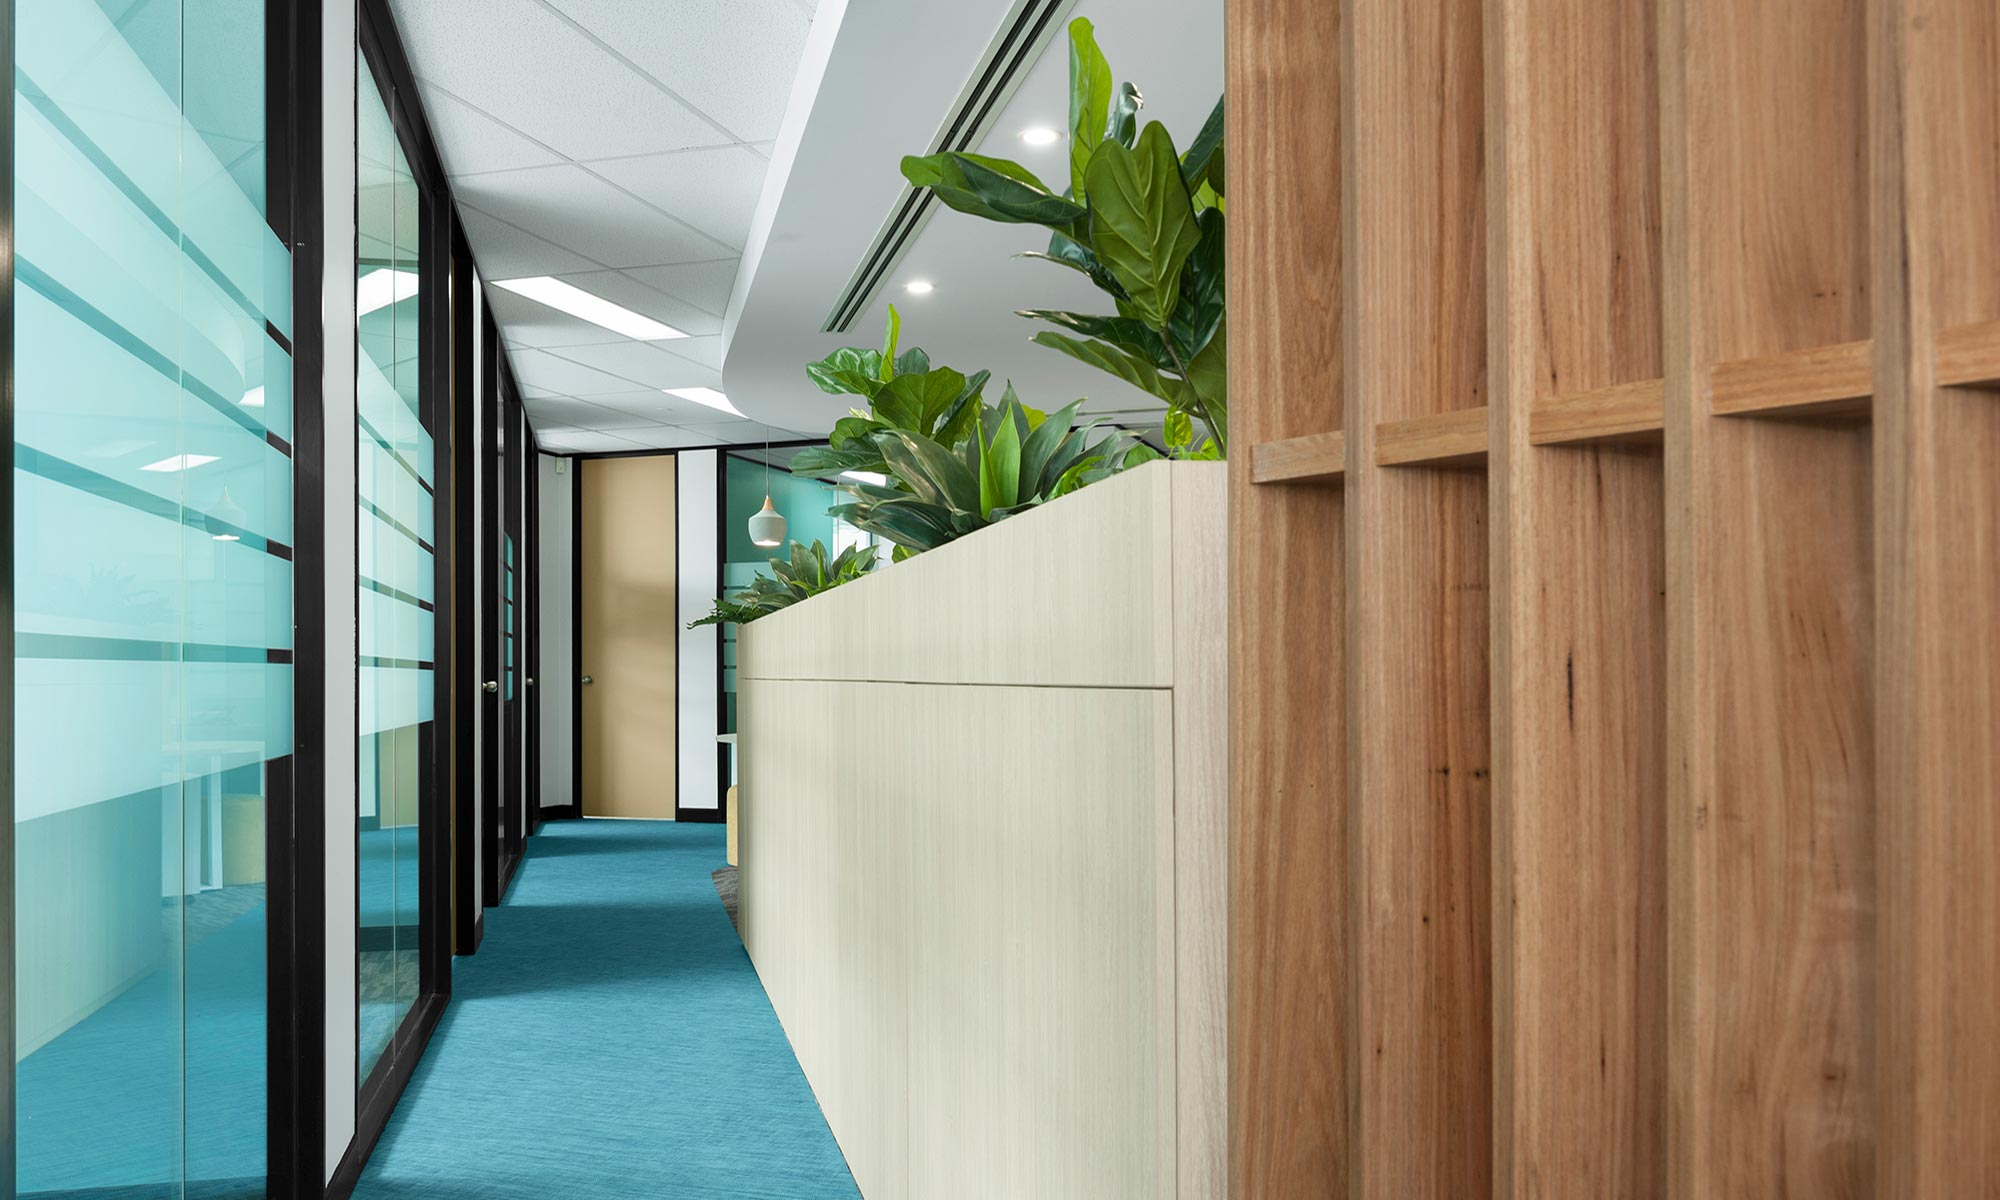 klm accountants office design fitout newcastle 03